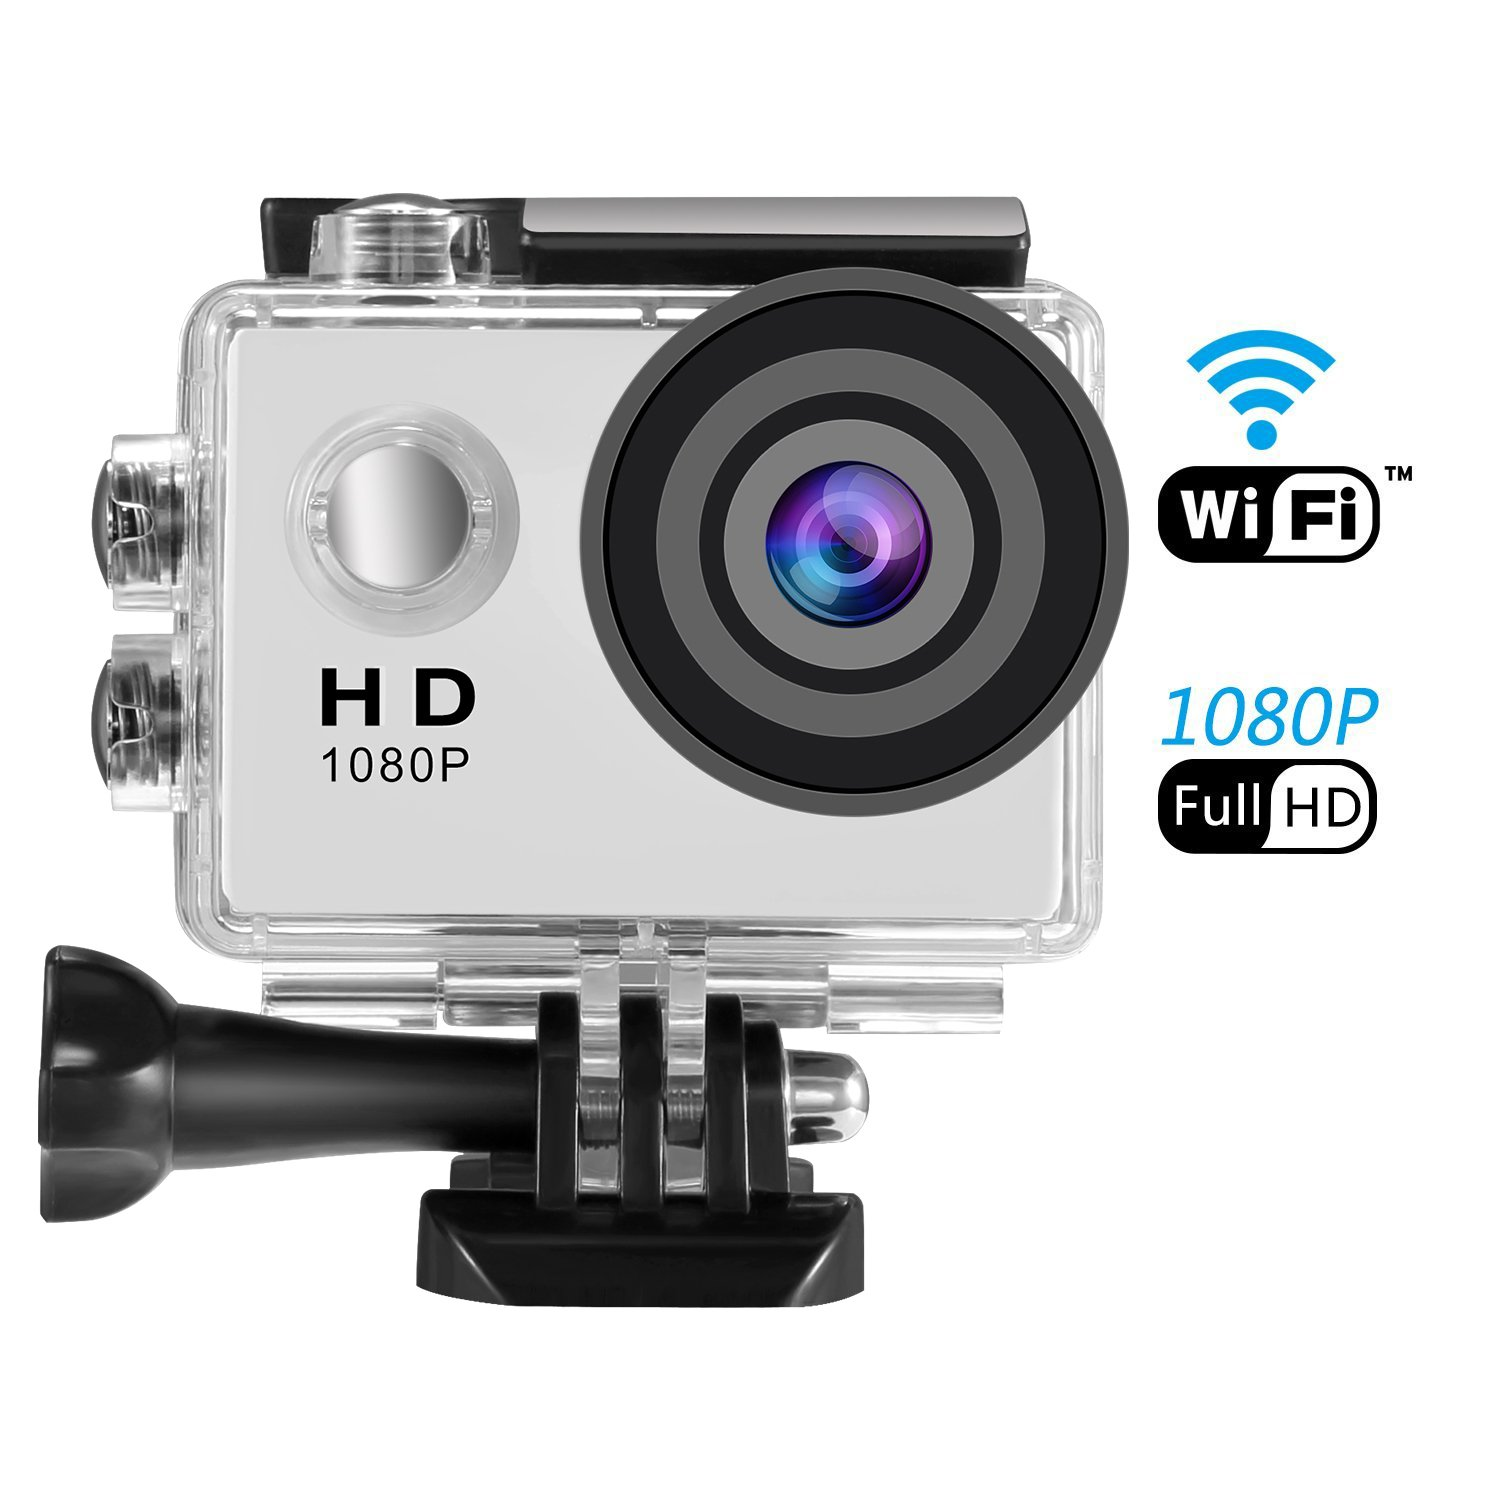 Action Cam WIFI 1080P, SENDOW Action Kamera WIFI Ultra HD Actionkamera Wasserdicht Zeitraffer Motorrad Helmkameras Sport Kamera mit Fernbedienung 170 Grad Weitwinkel Handgelenk-fernbedienung Sendowtek